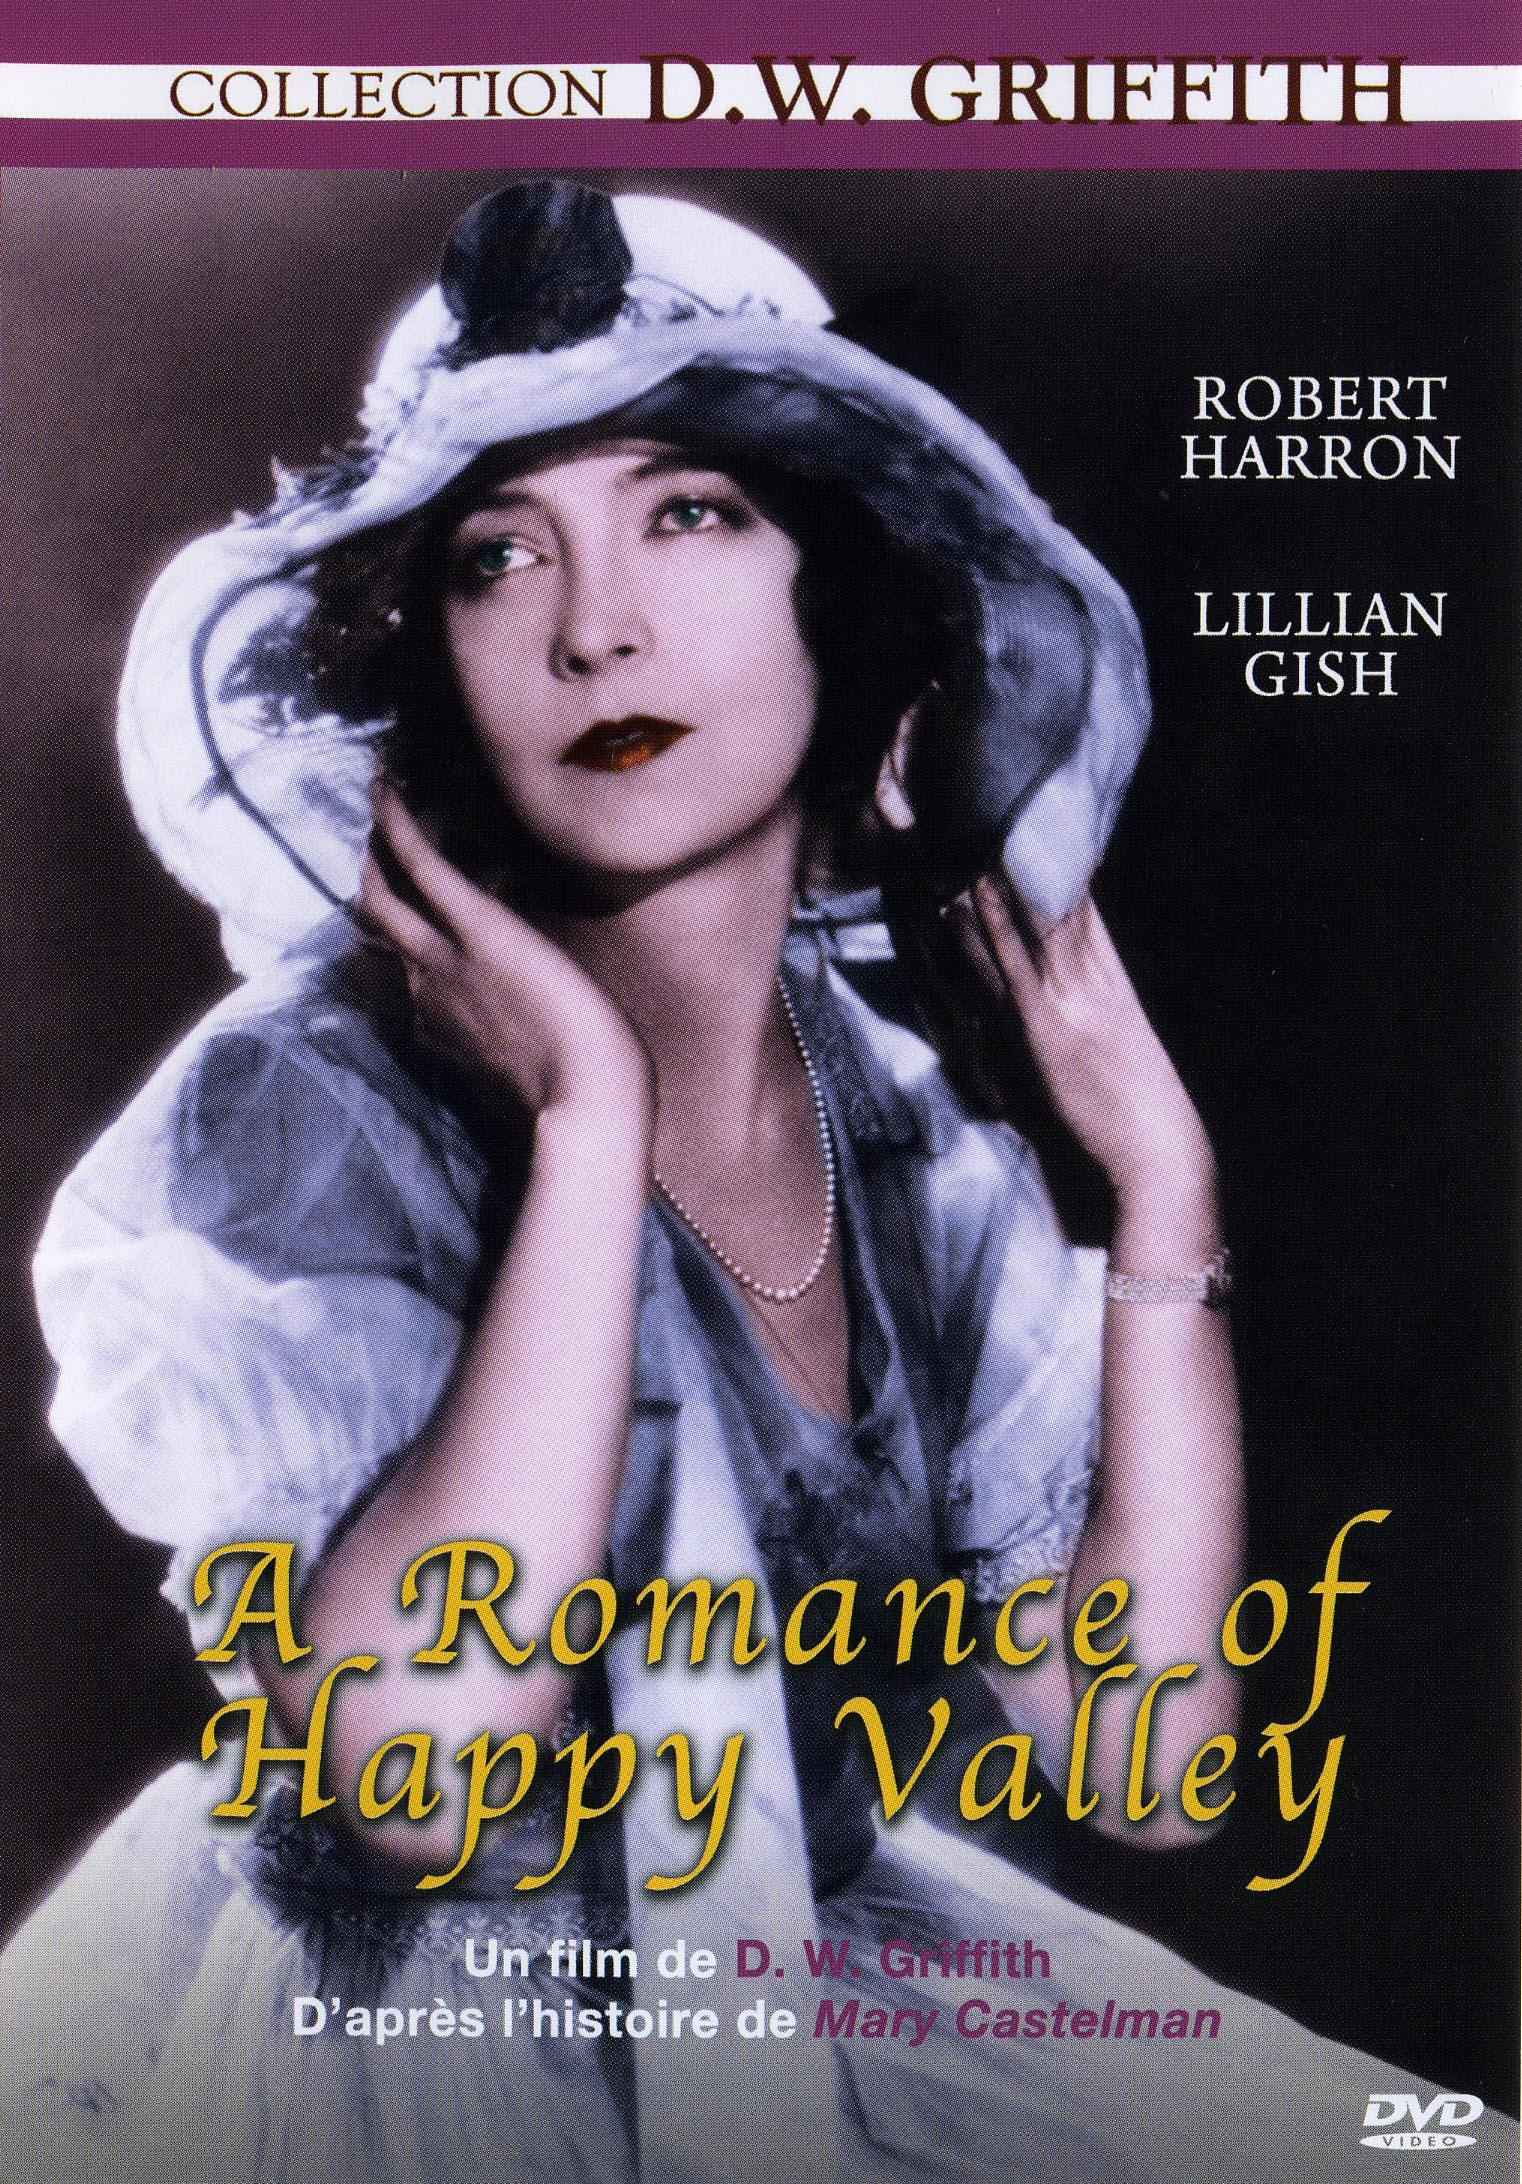 A romance of happy valley-dvd  collection d.w griffith